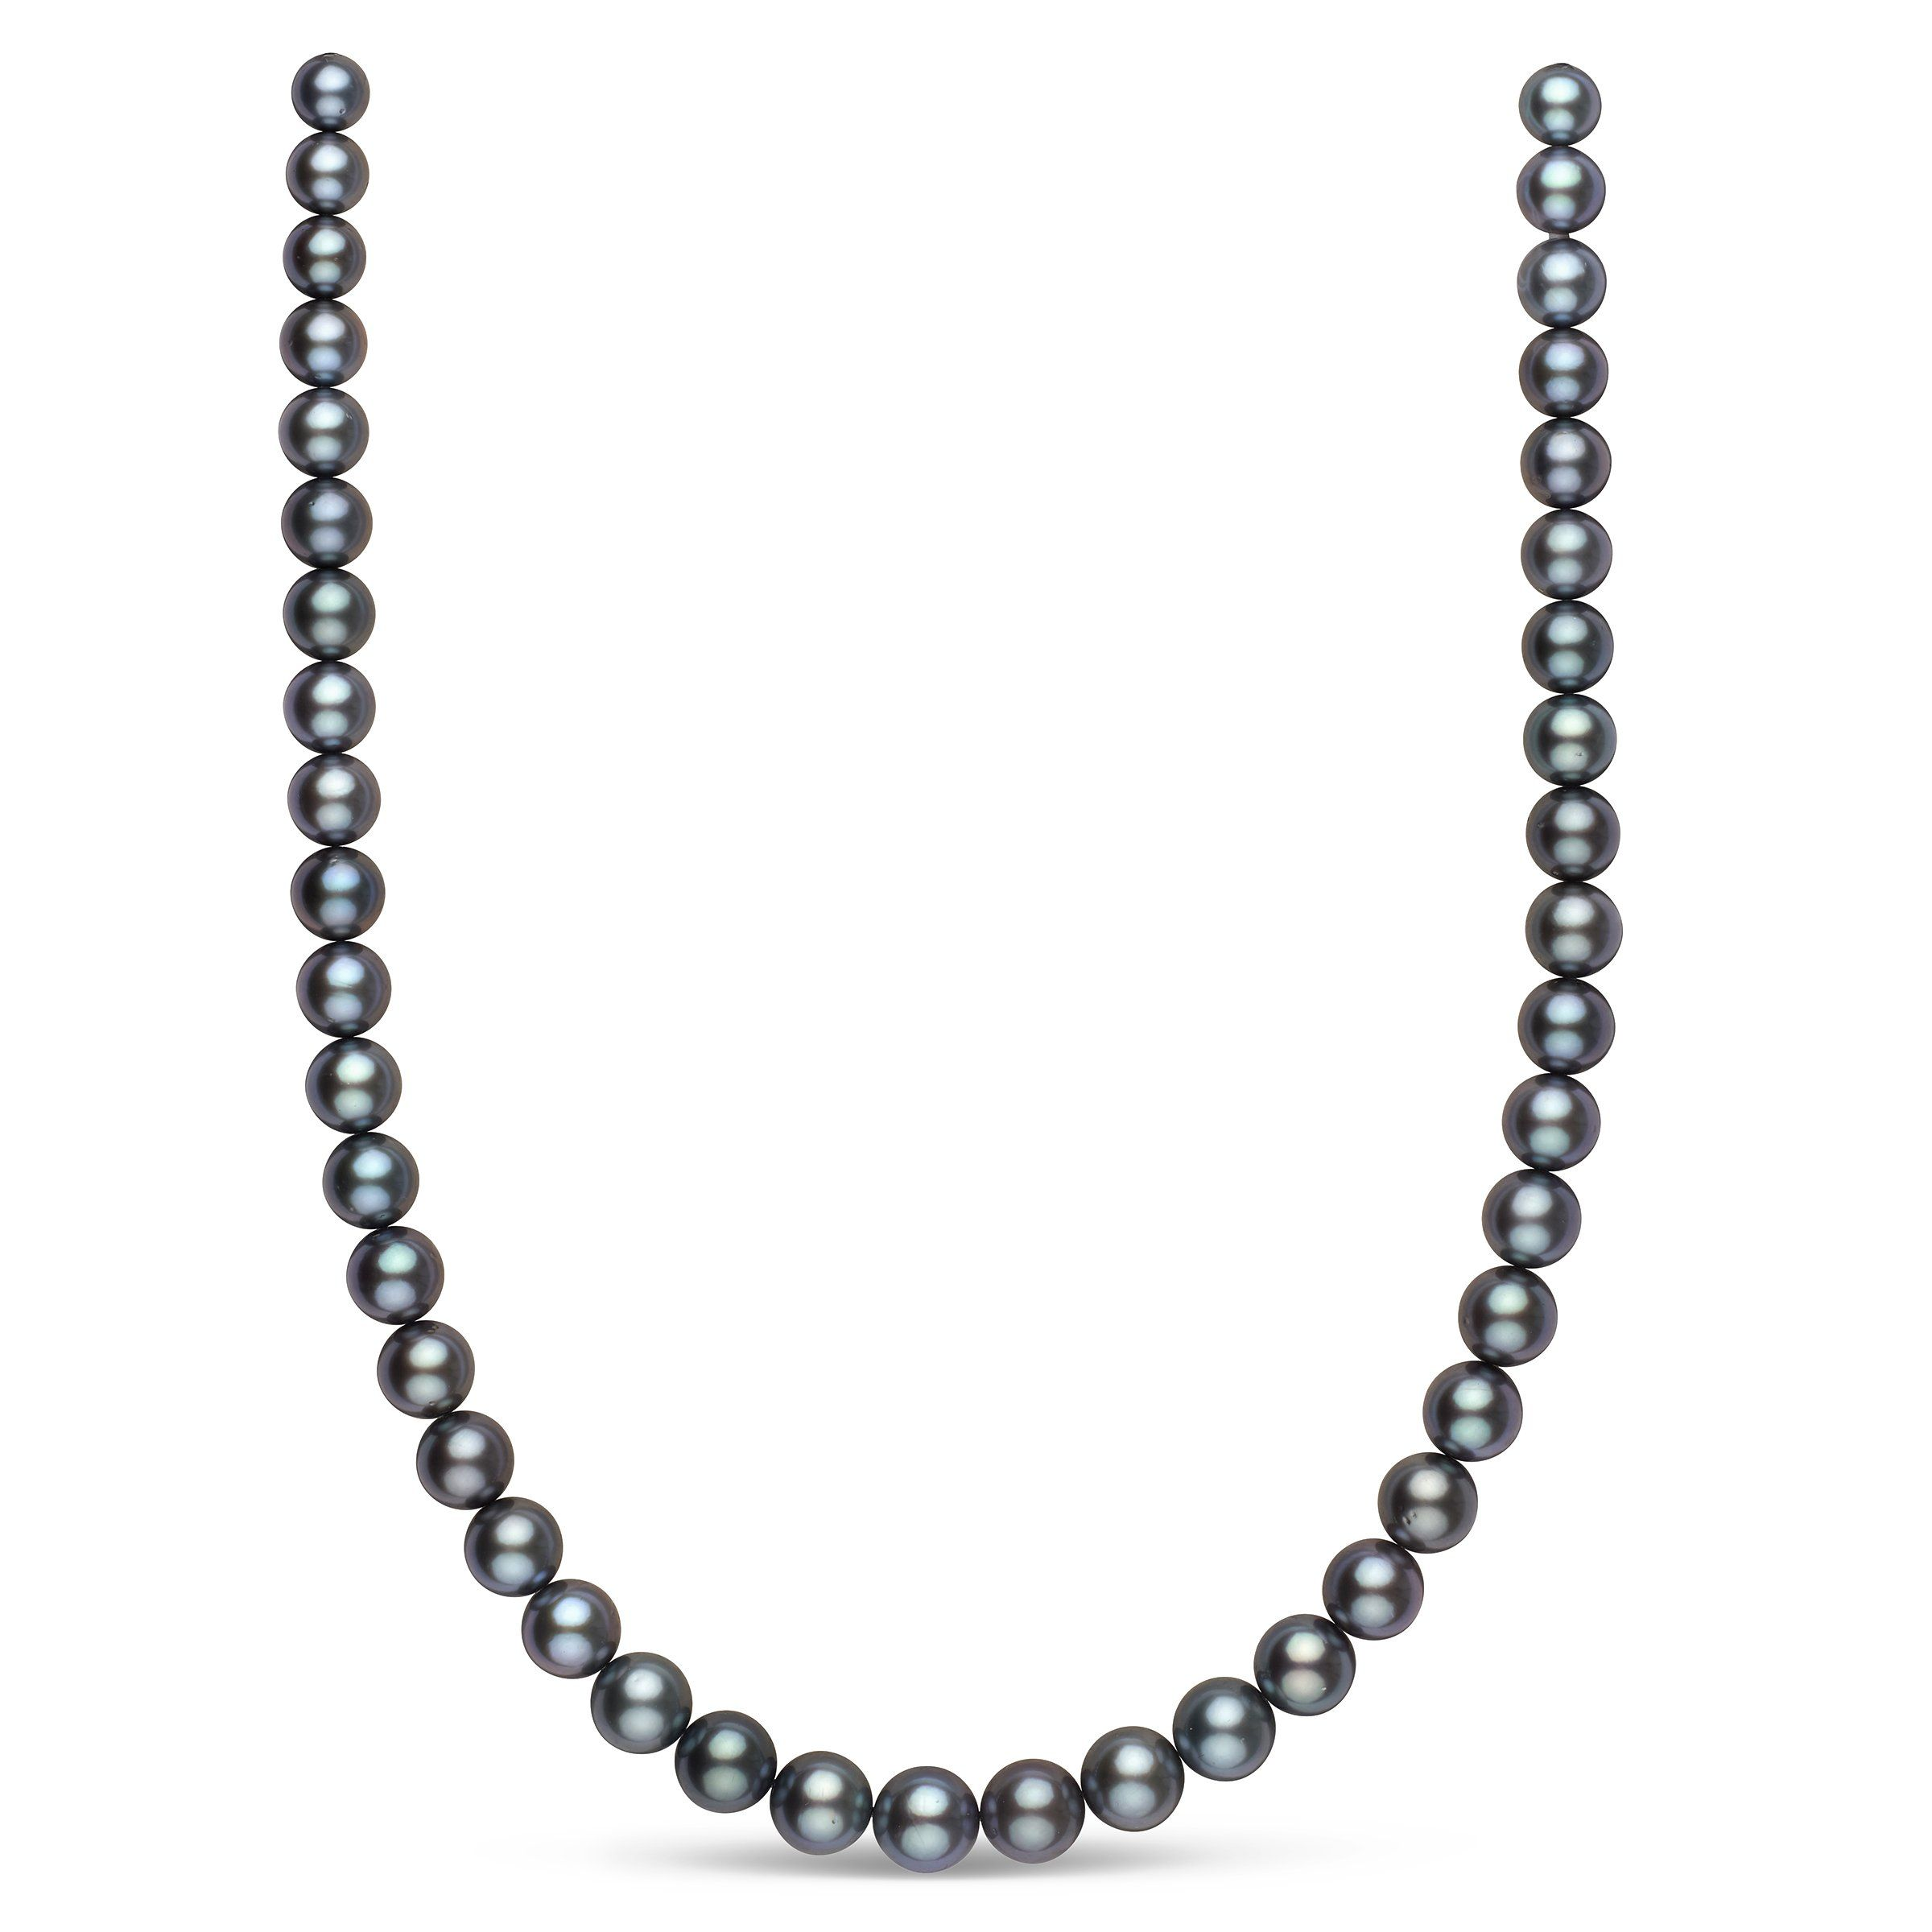 7.8-10.4 mm AA+/AAA Tahitian Round Pearl Necklace